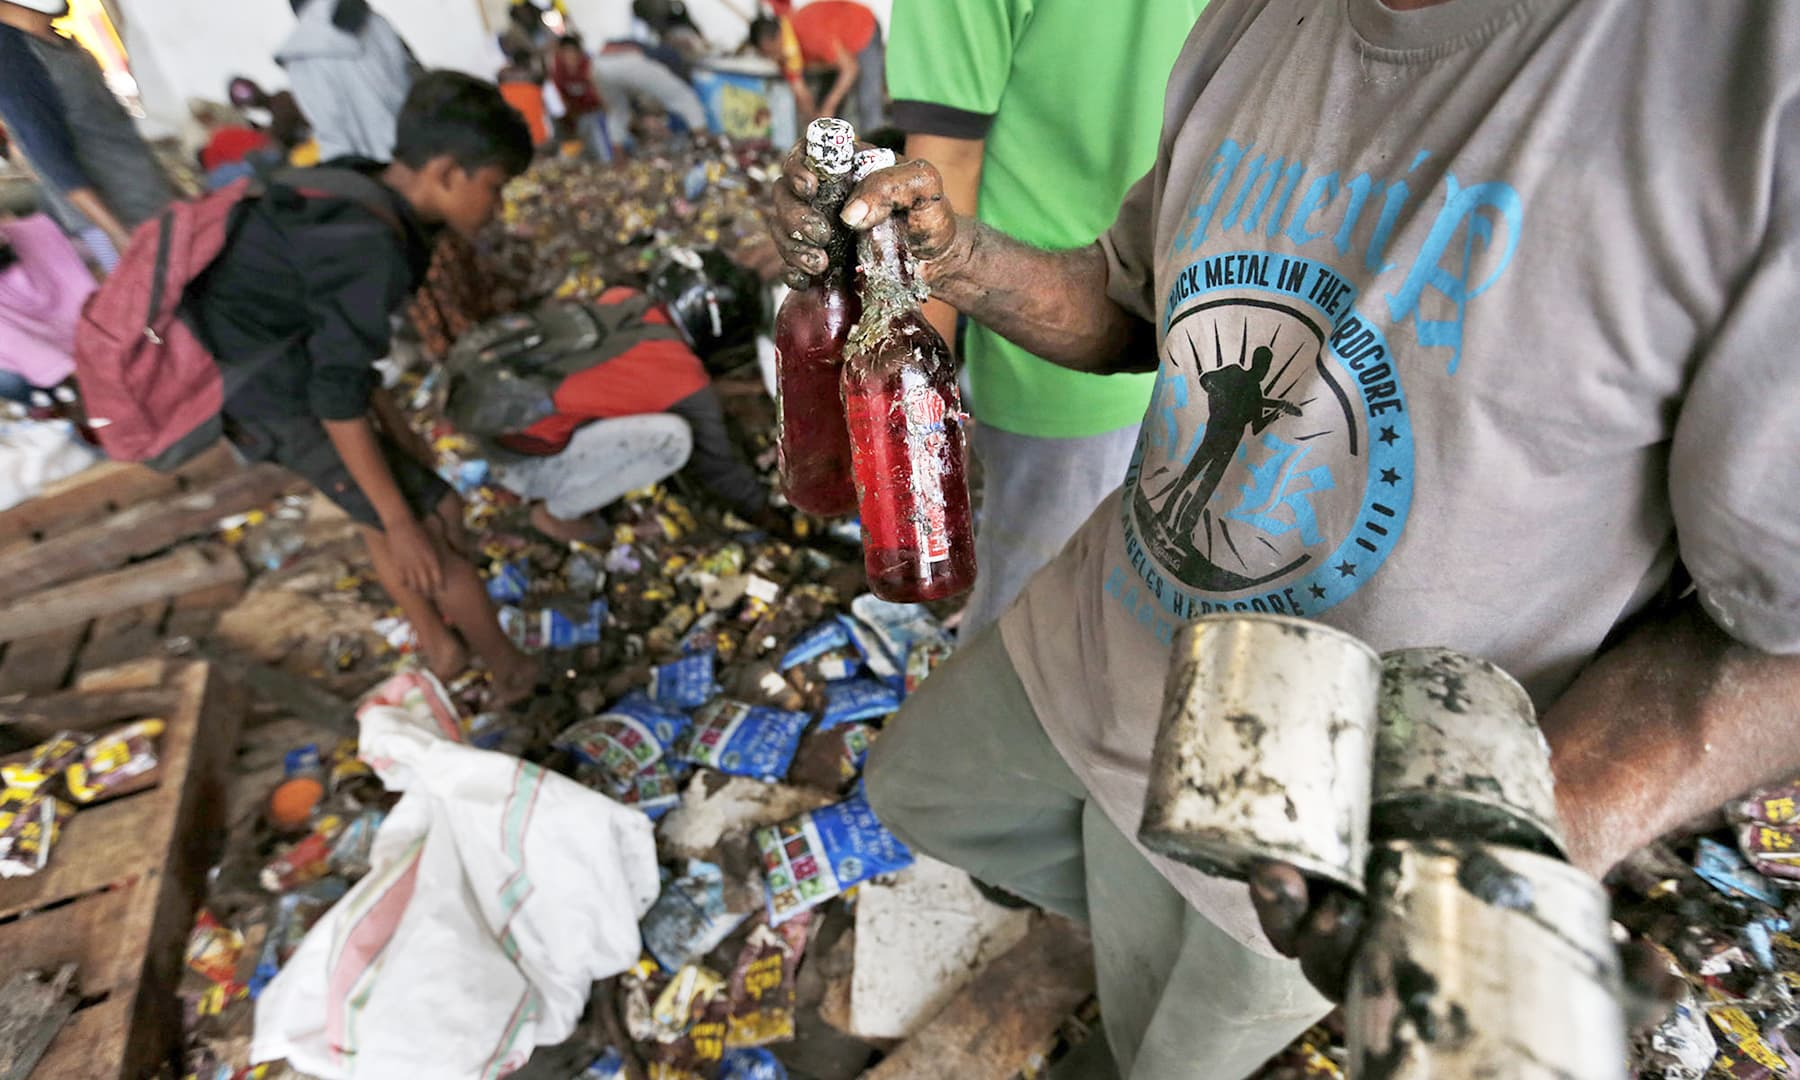 A man holds bottles of syrup and cans of condensed milk scavenged from an abandoned warehouse. — AP